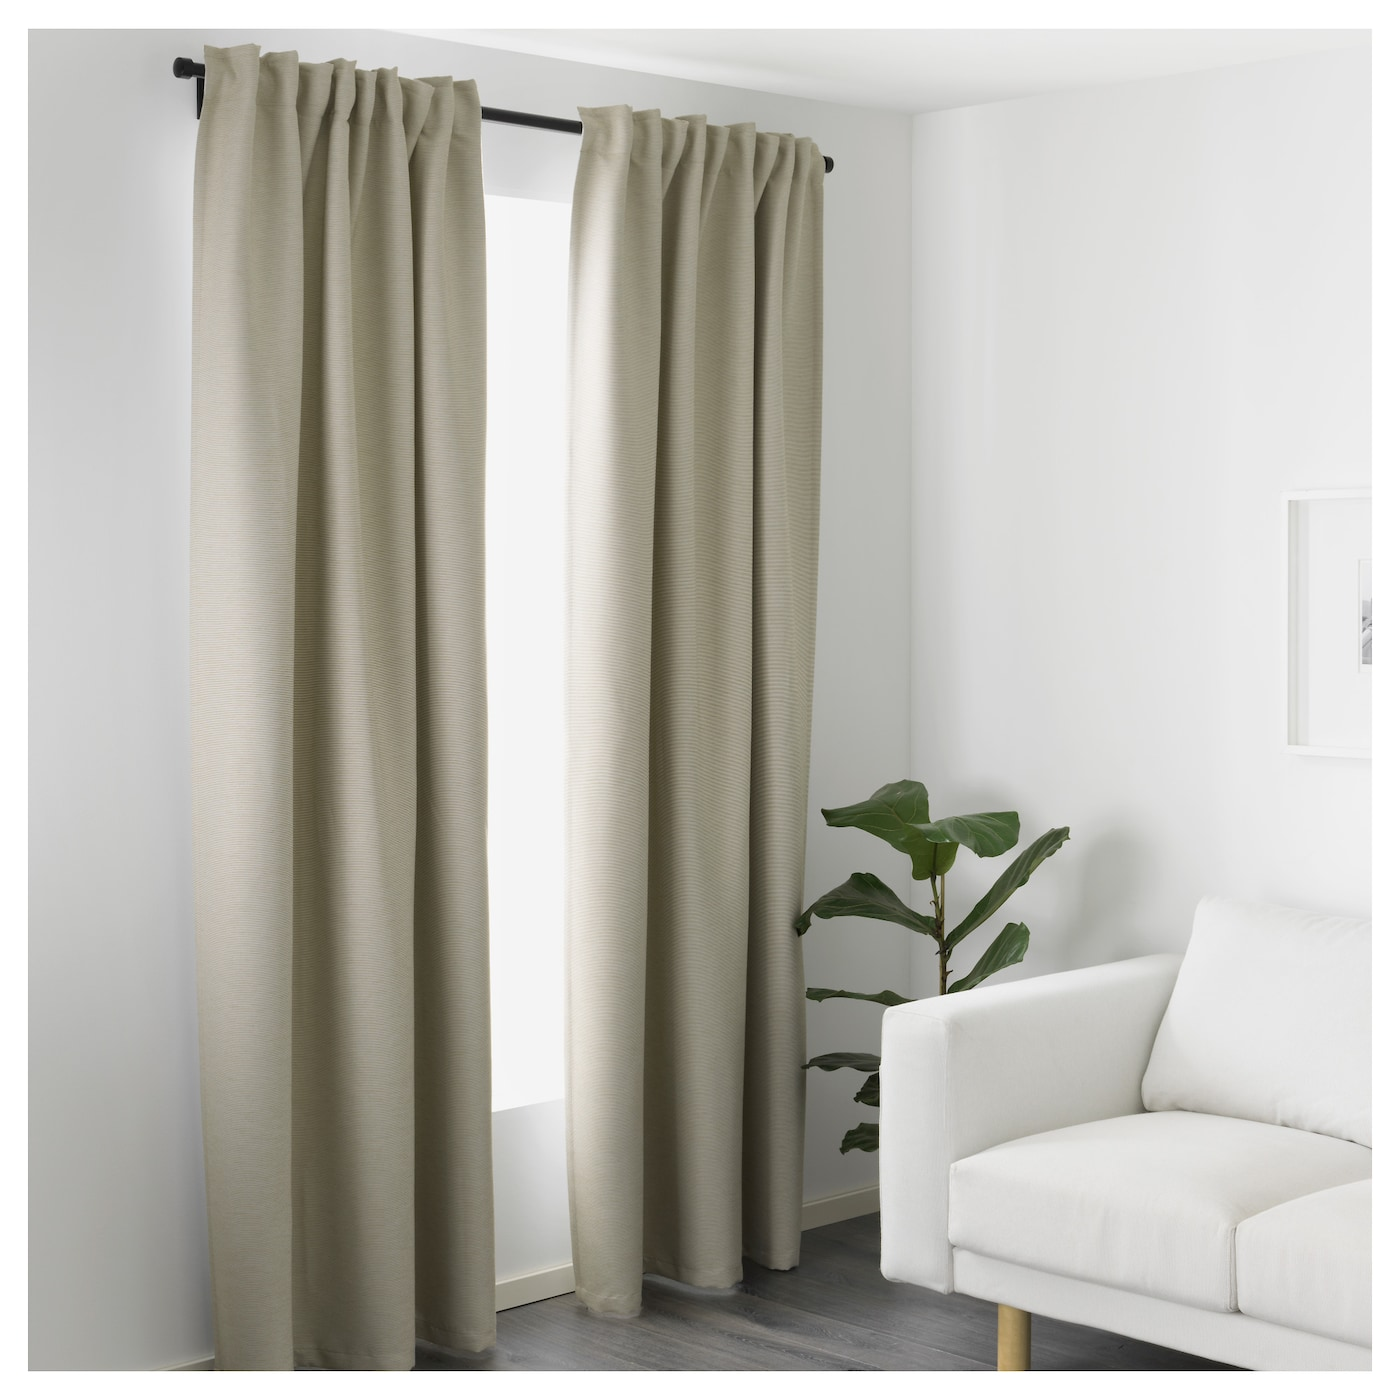 Vilborg curtains 1 pair beige 145x250 cm ikea for Where can i buy curtains online